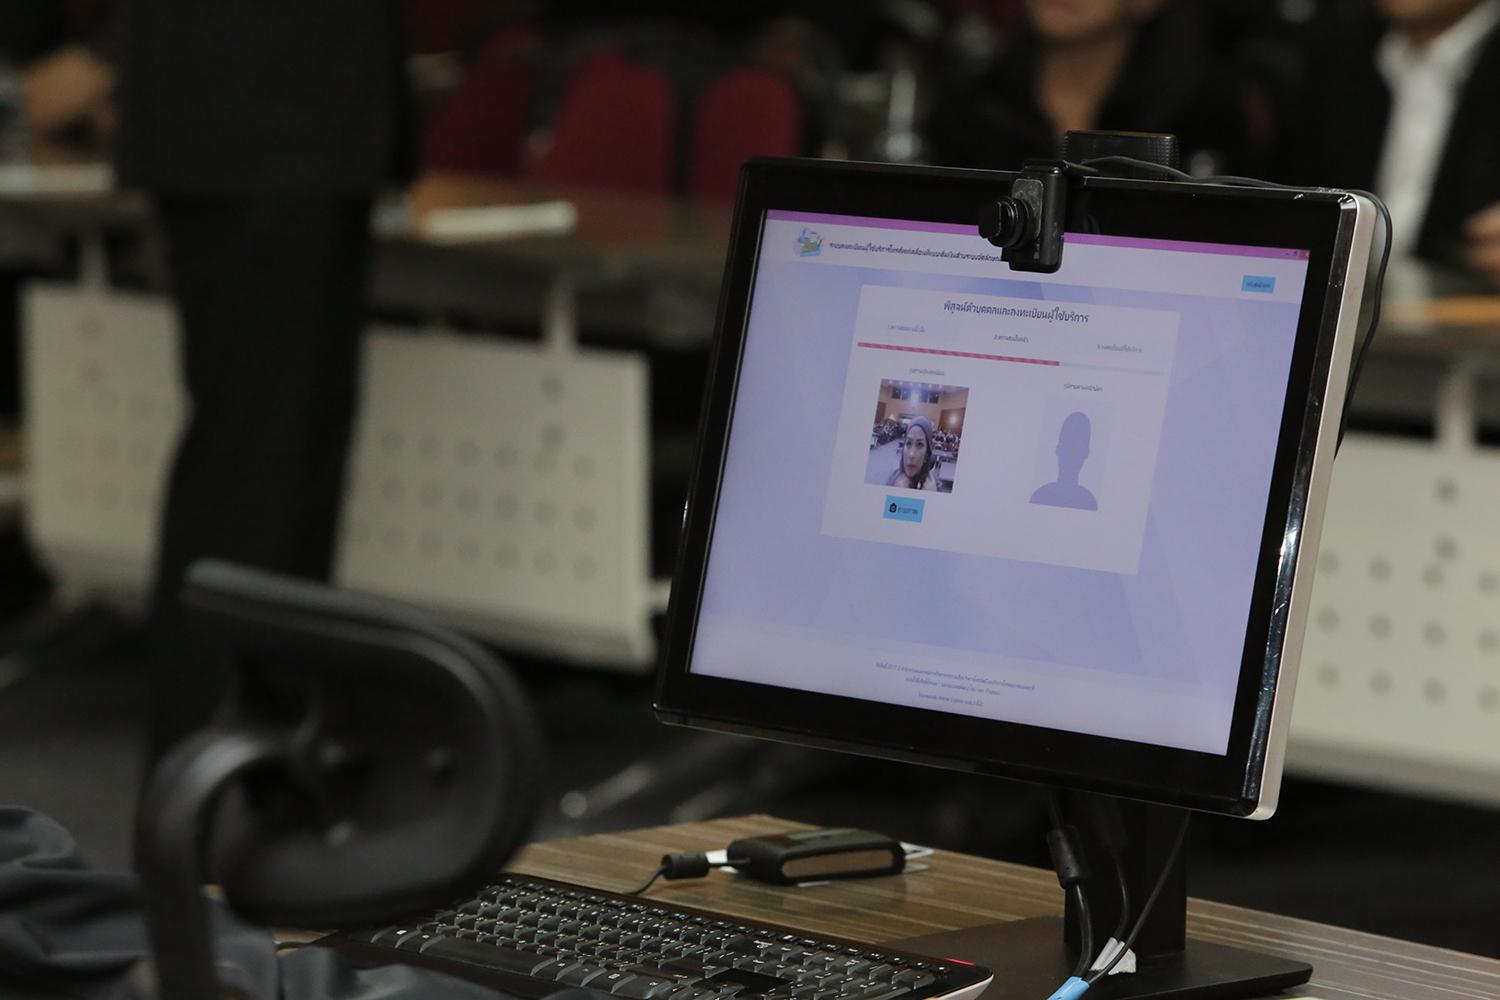 Citizens' stored biometric data is at high risk for data leaks and identity theft, Tisa says.